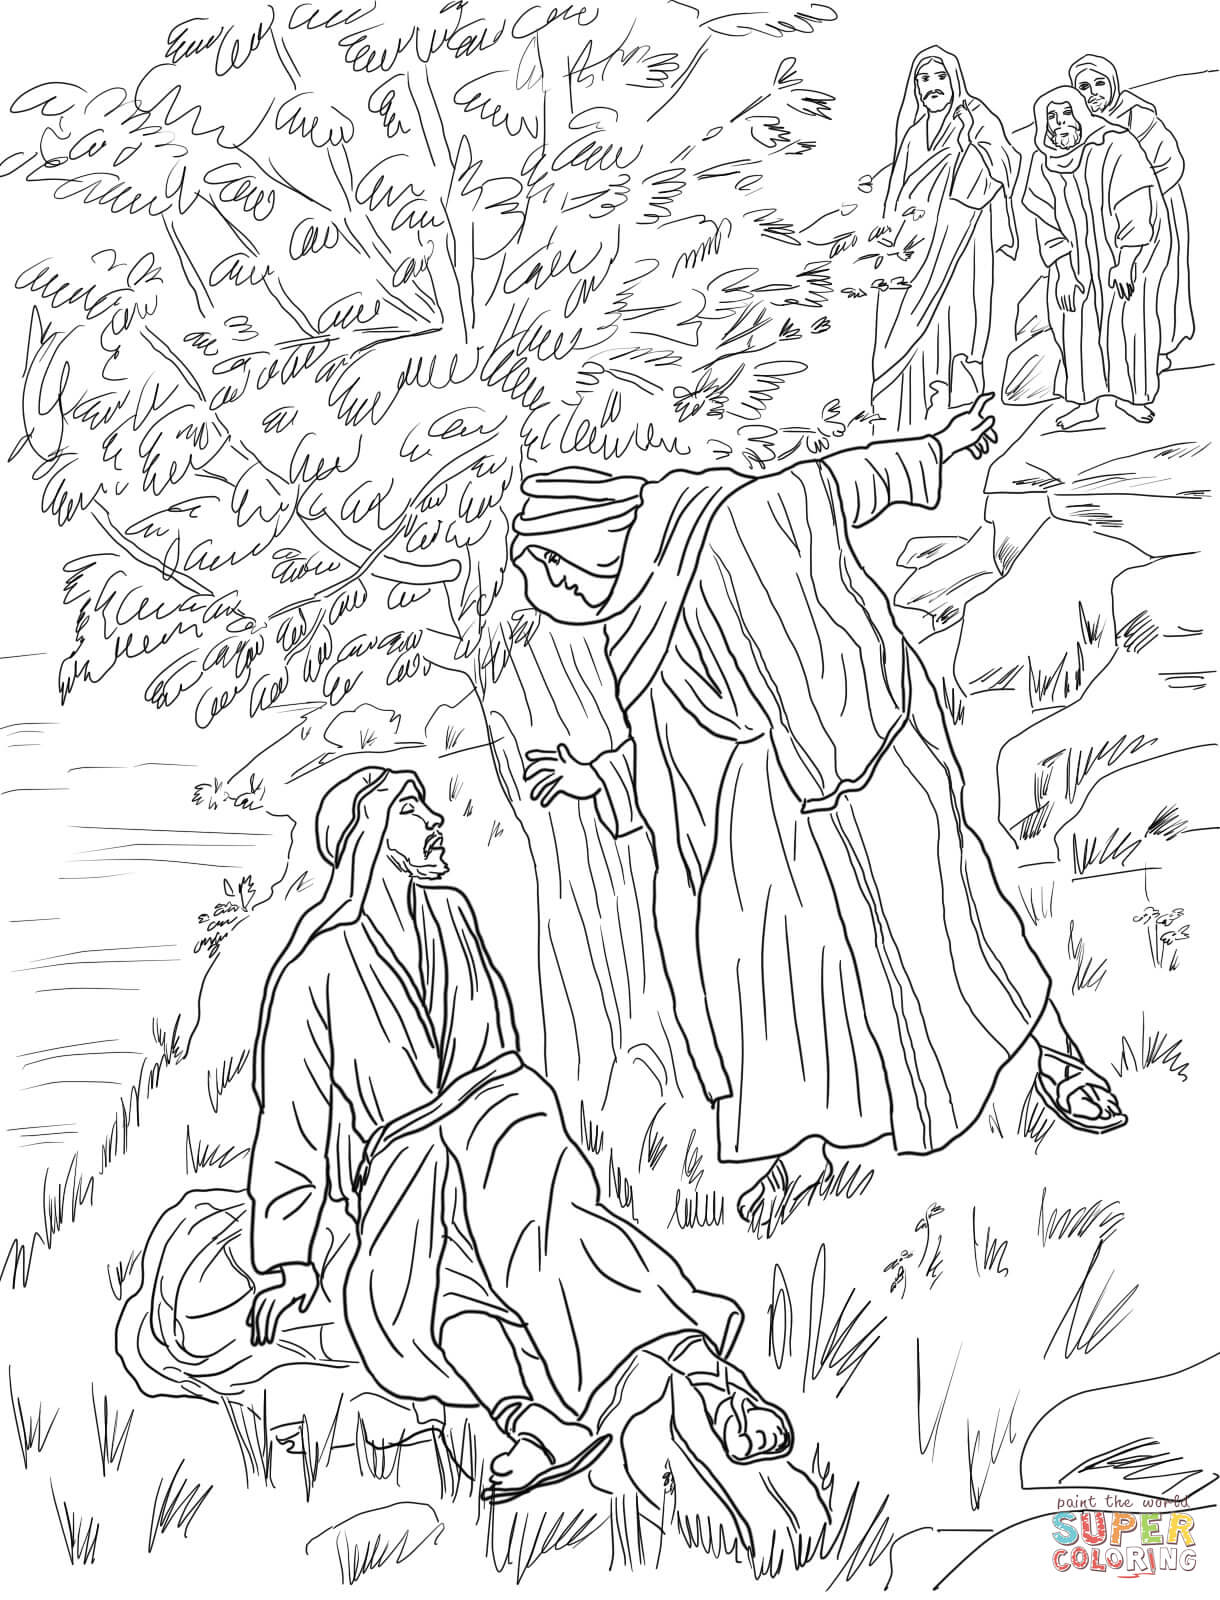 the transfiguration of jesus coloring page jesus transfiguration coloring page coloring home coloring jesus transfiguration the page of